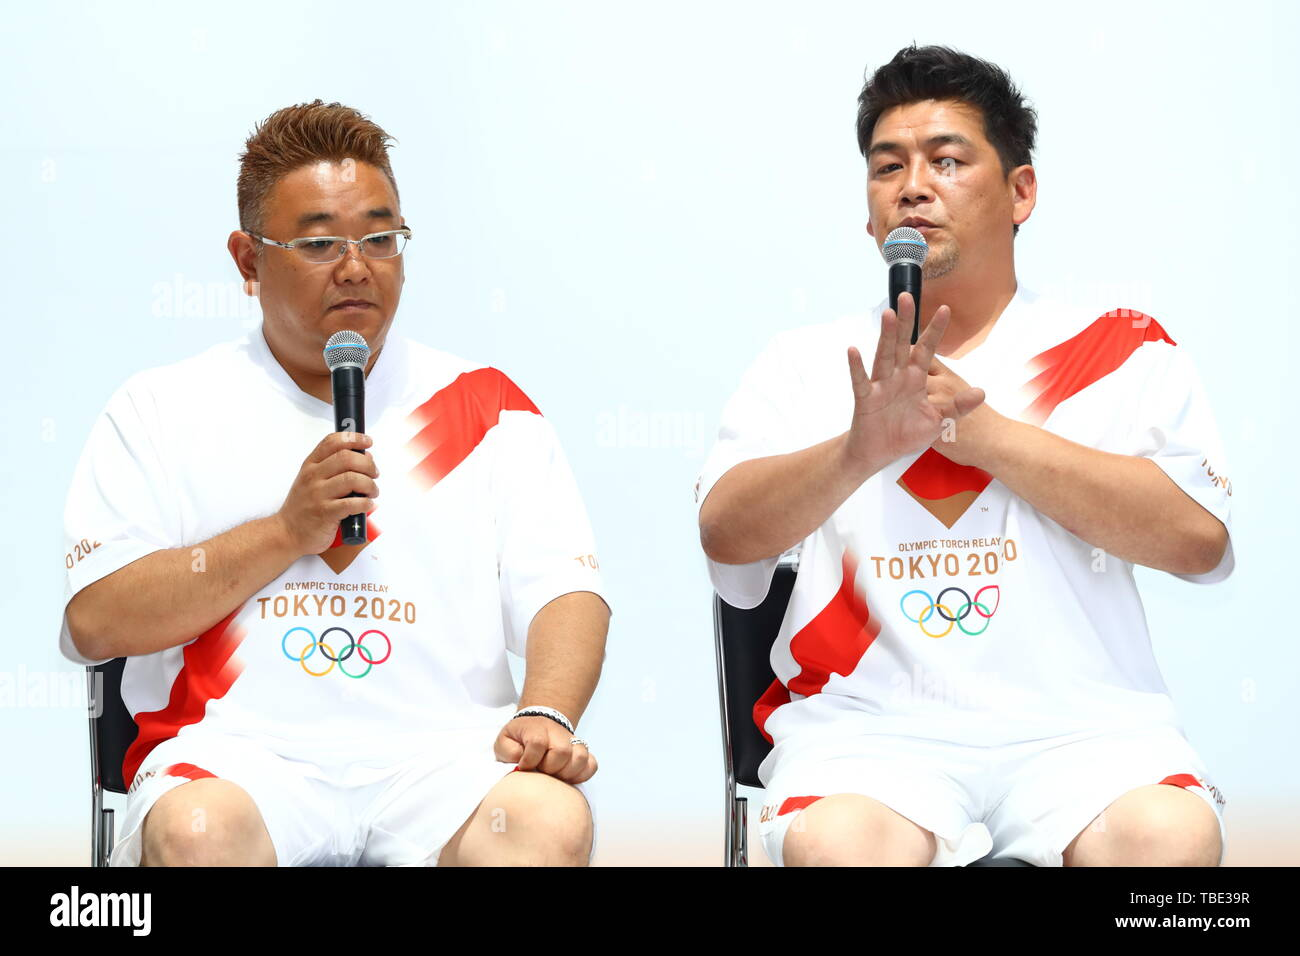 Tokyo, Japan. 1st June, 2019. Mikio Date & Takeshi Tomizawa, The Tokyo Organising Committee of the Olympic and Paralympic Games (Tokyo 2020) holds commemorative event of Torch Relay in Tokyo, Japan on June 1, 2019, 300 days before of the Japanese leg of the Tokyo 2020 Olympic Torch Relay starts. The Organising Committee unveiled an official uniform, course outline and applicant guidelines for Torch Relay Runners. Credit: Naoki Nishimura/AFLO SPORT/Alamy Live News - Stock Image